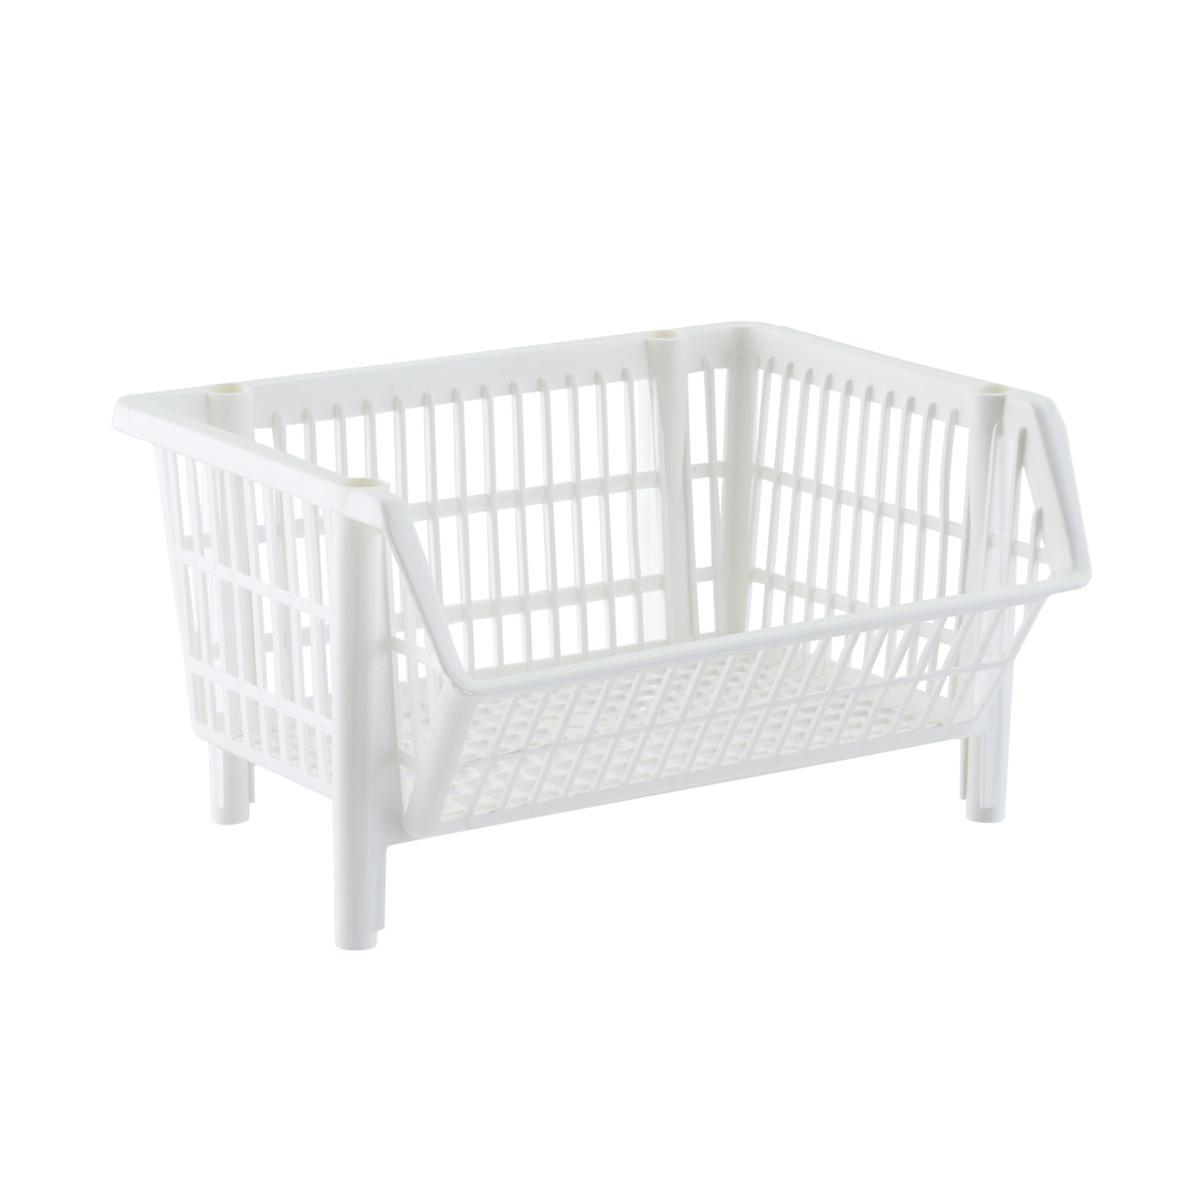 Our Basic White Stackable Basket